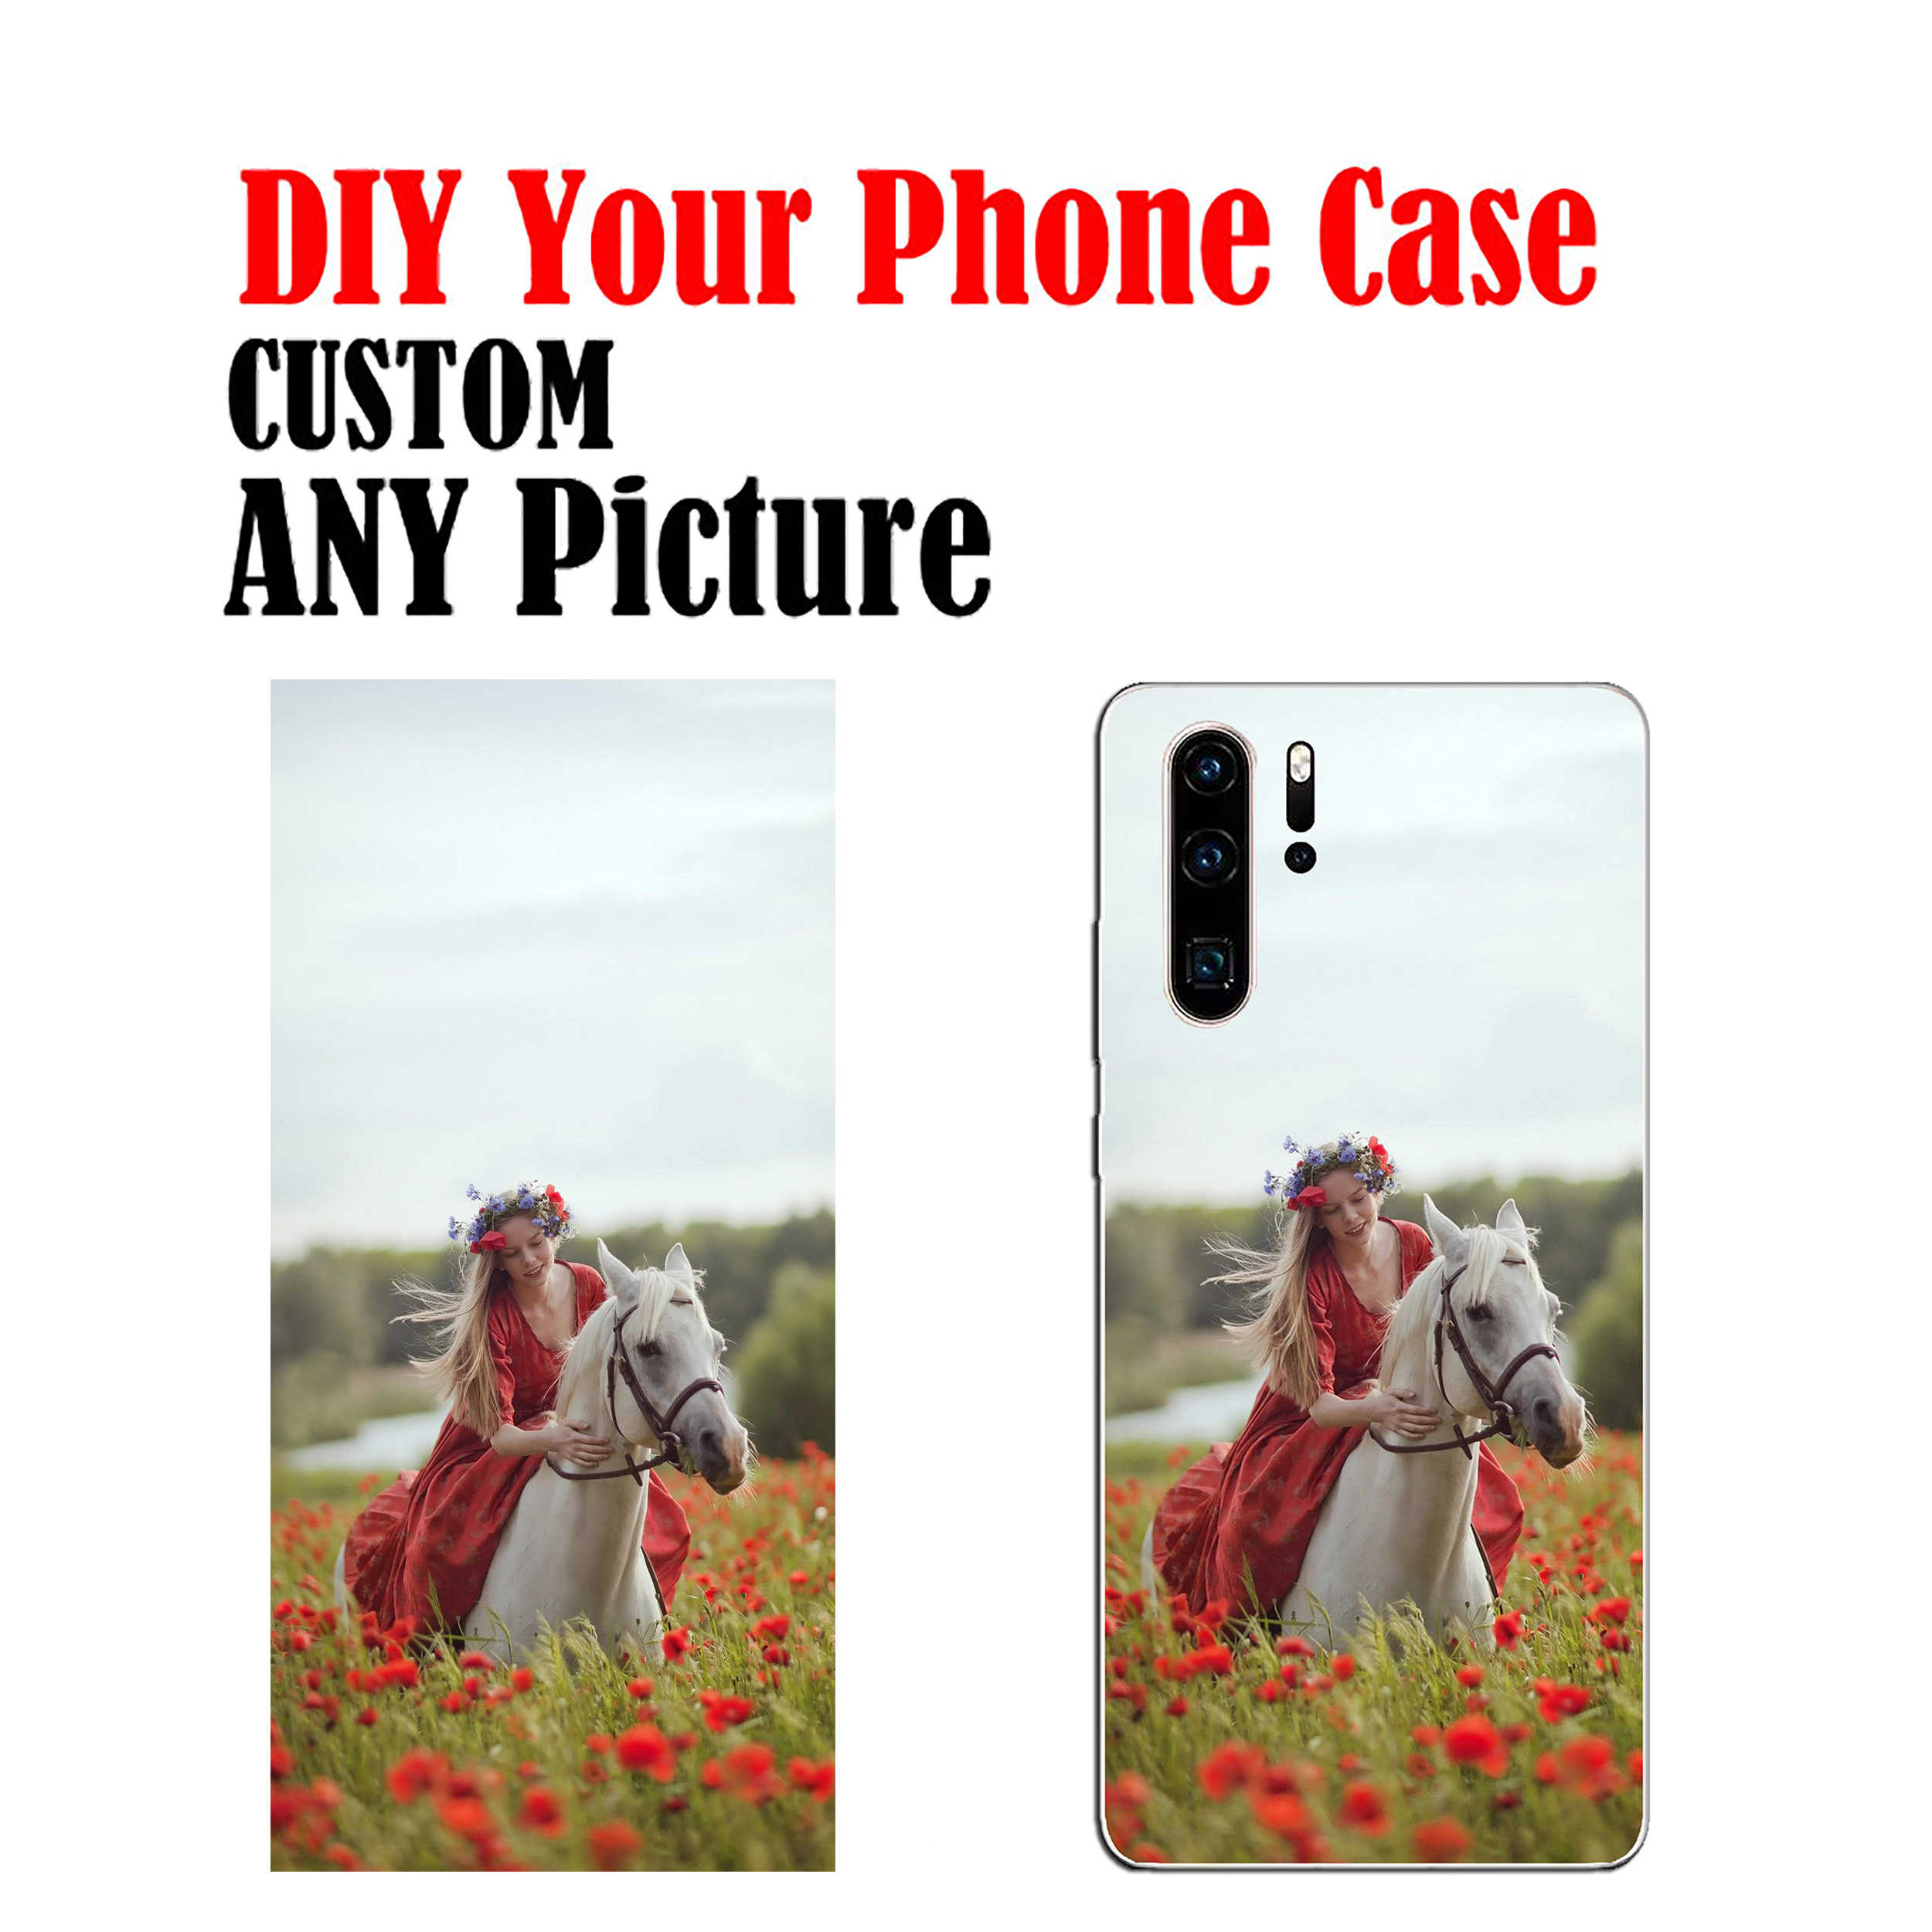 DIY Photo Name Text Customized Soft Cell Phone Case Cover Shell Coque for HUAWEI y6 y7 y9 2018 Y6 Pro 2017 Y5 Prime 2018